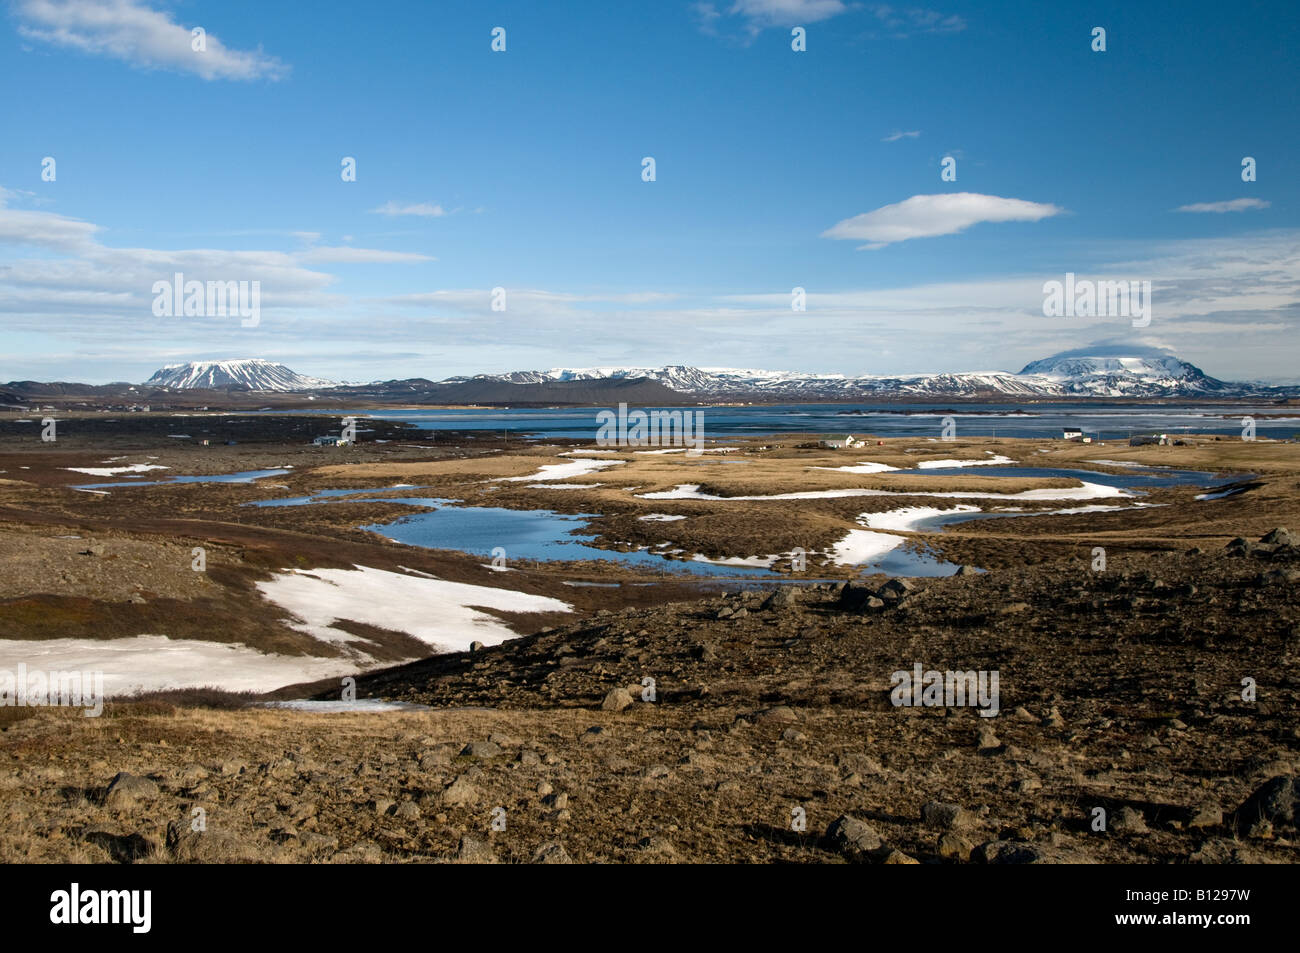 Myvatn lake view from road 848 jcn 87 near Reykjahlid. Iceland - Stock Image